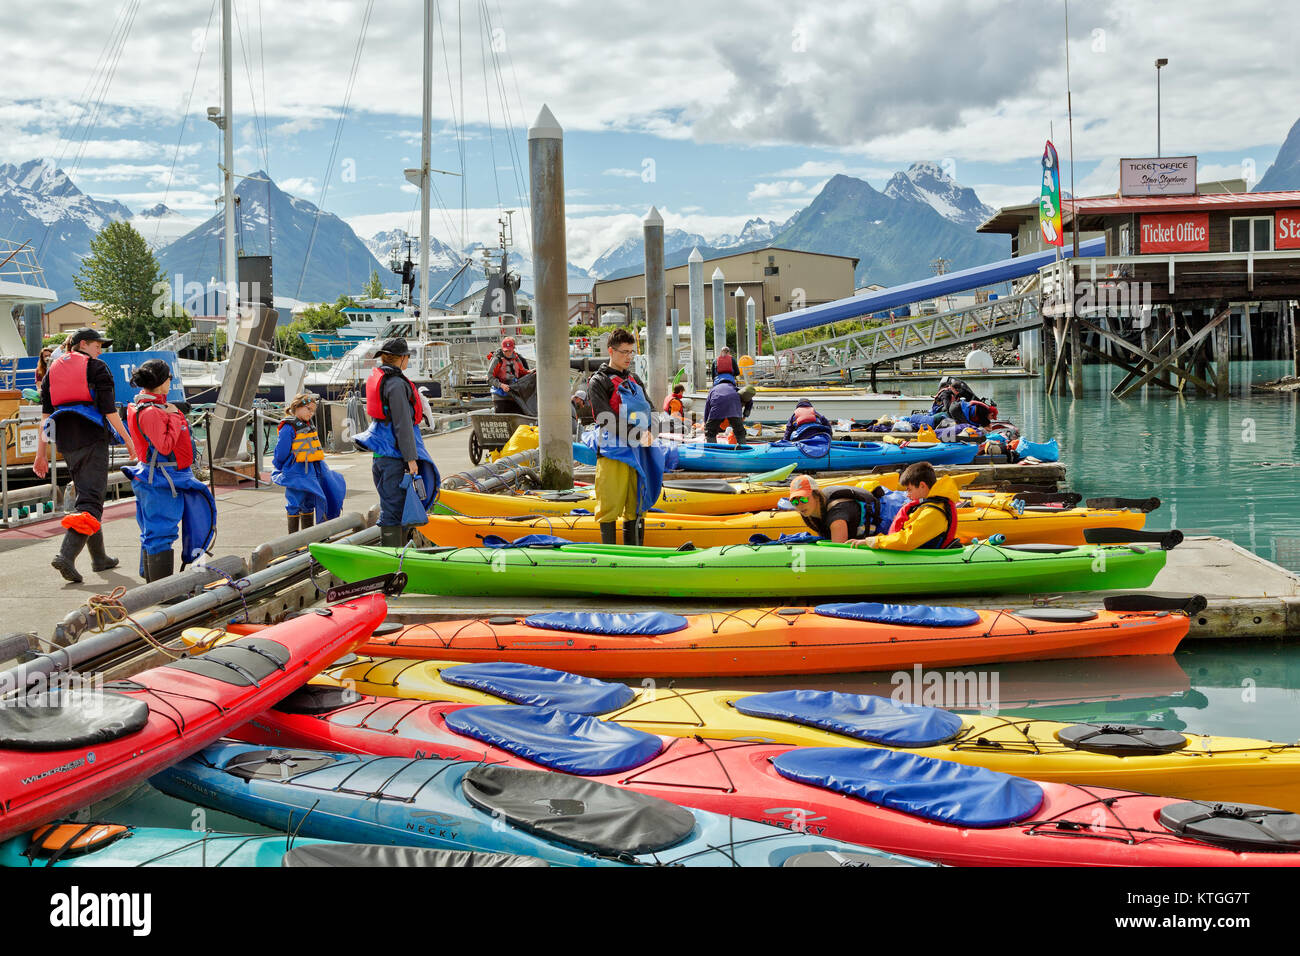 Kayakers wearing safety gear, receiving instructions prior to departing small boat harbor. - Stock Image